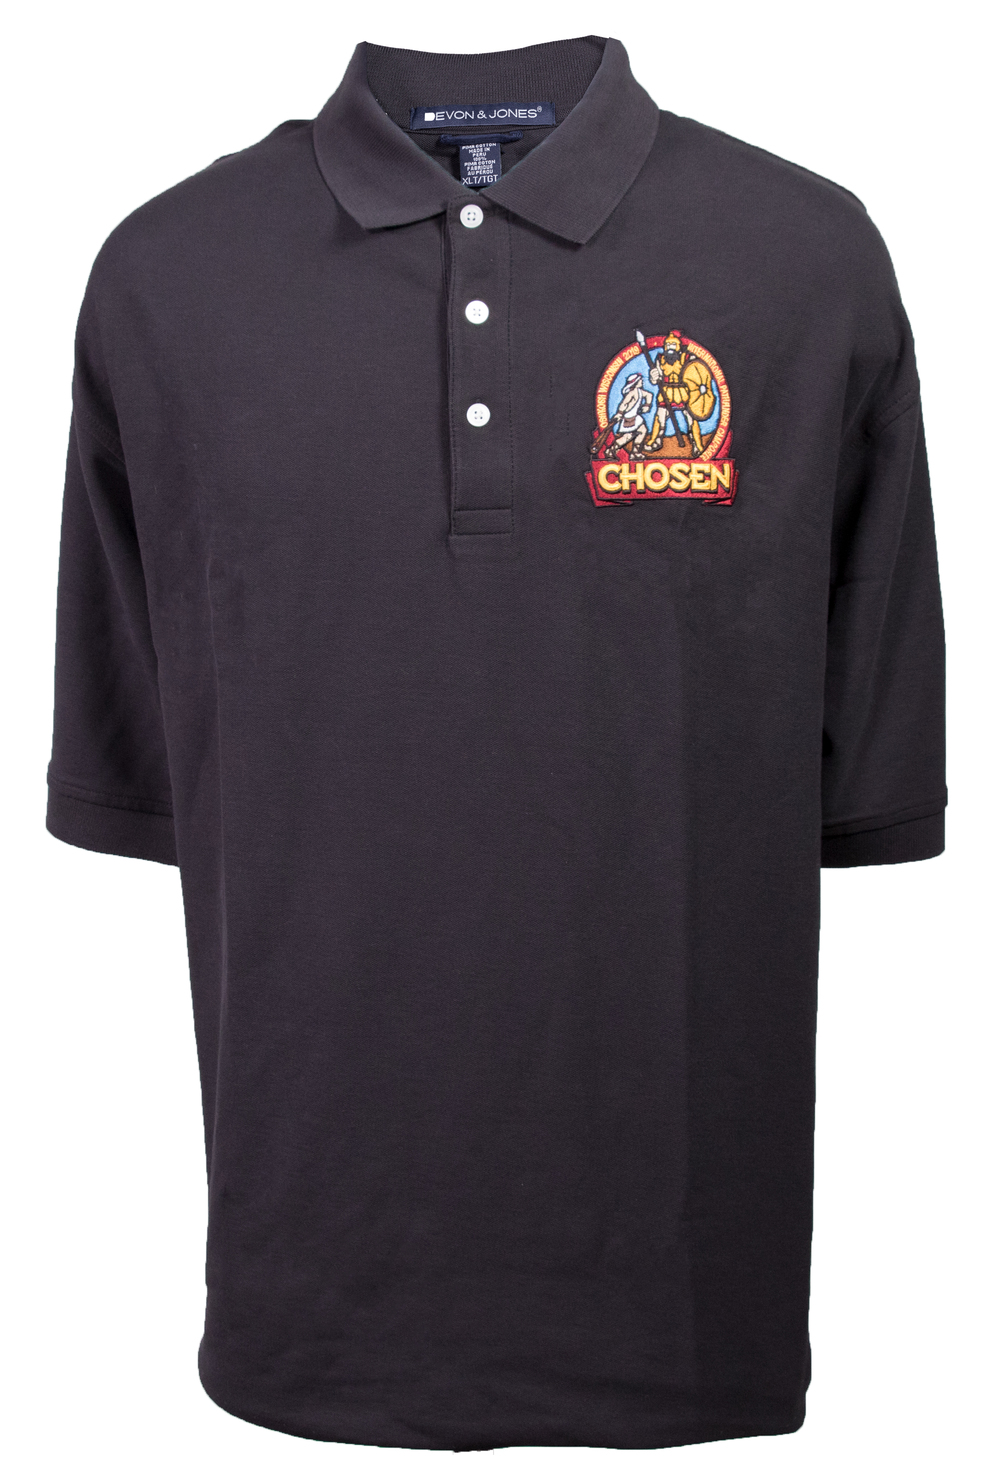 Chosen Men's Polo Shirt